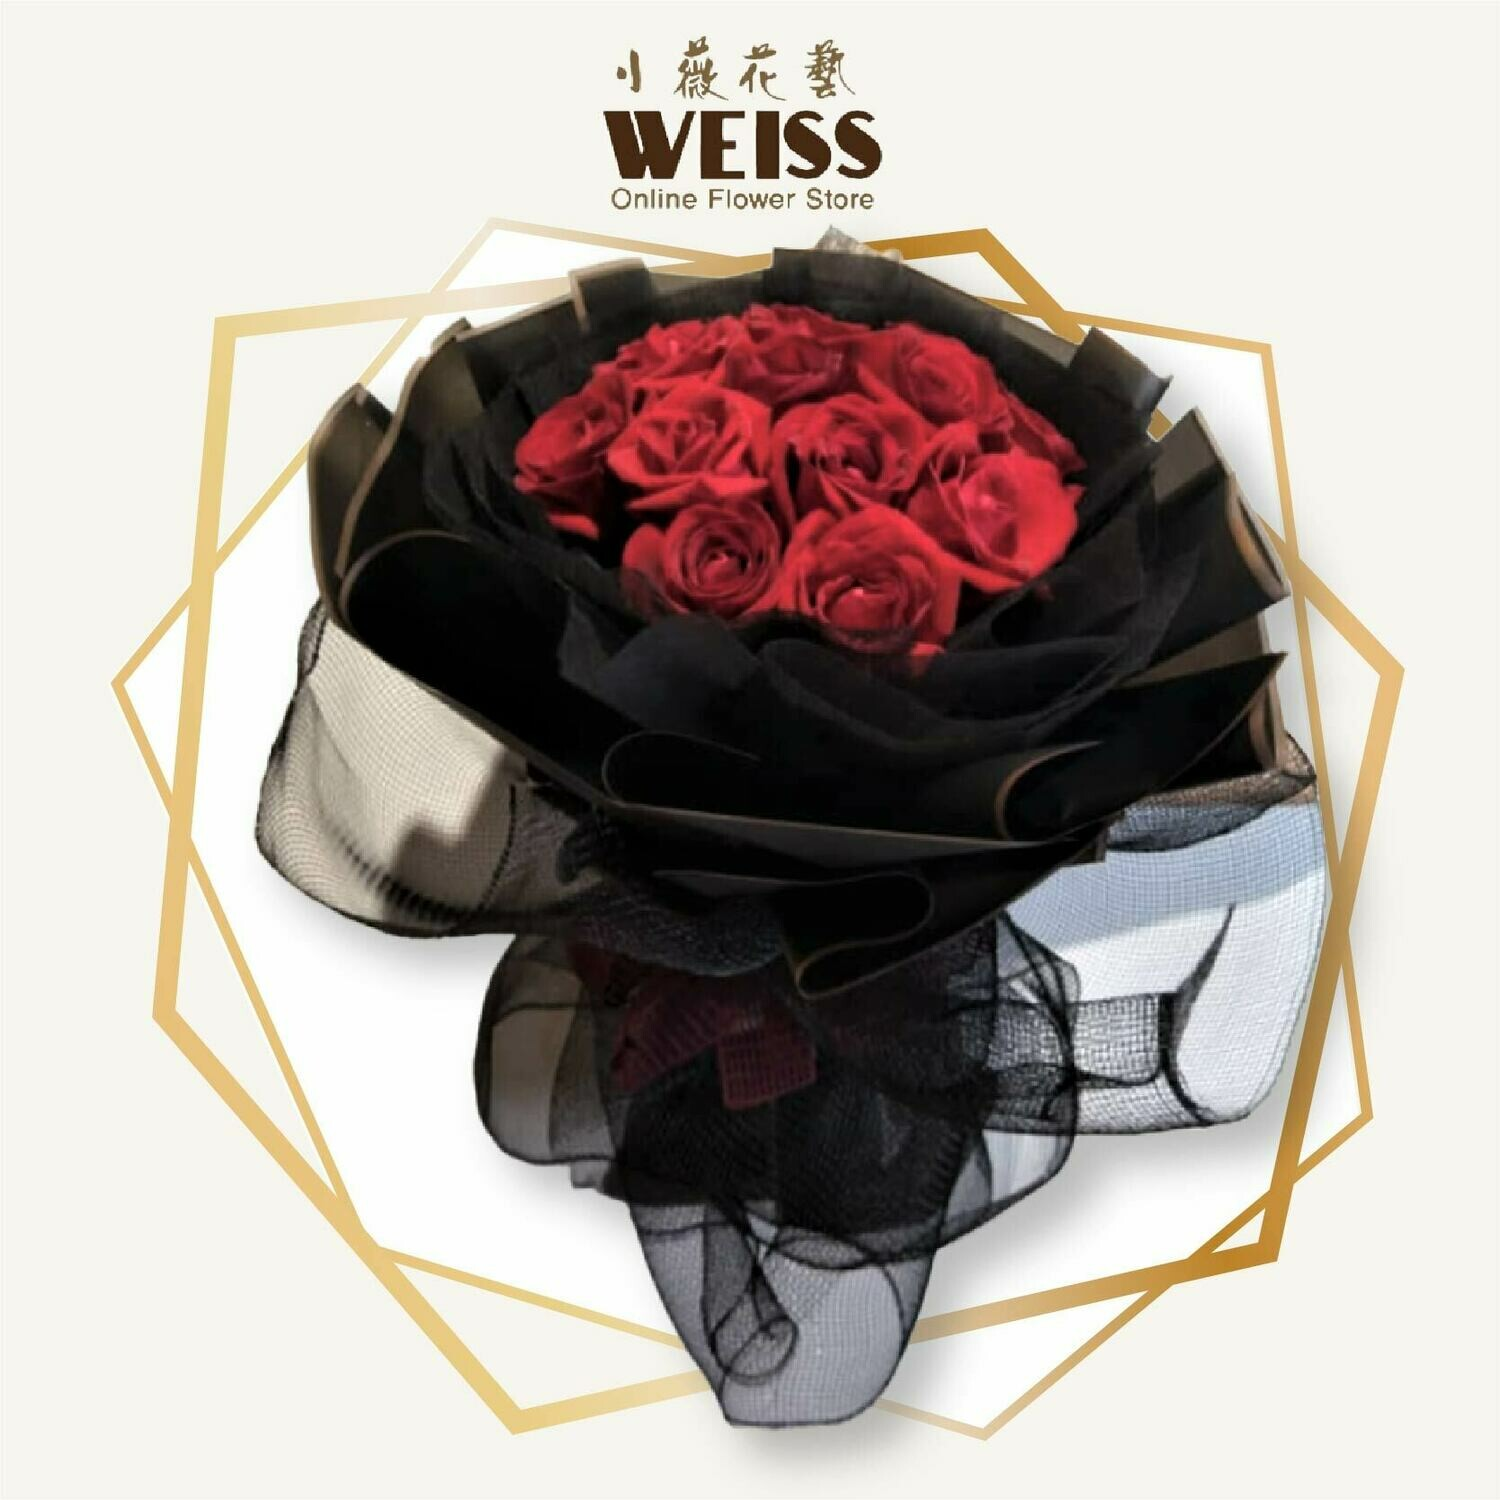 Weiss Florist 12stk red roses (Free Shipping! Only deliver in JB)